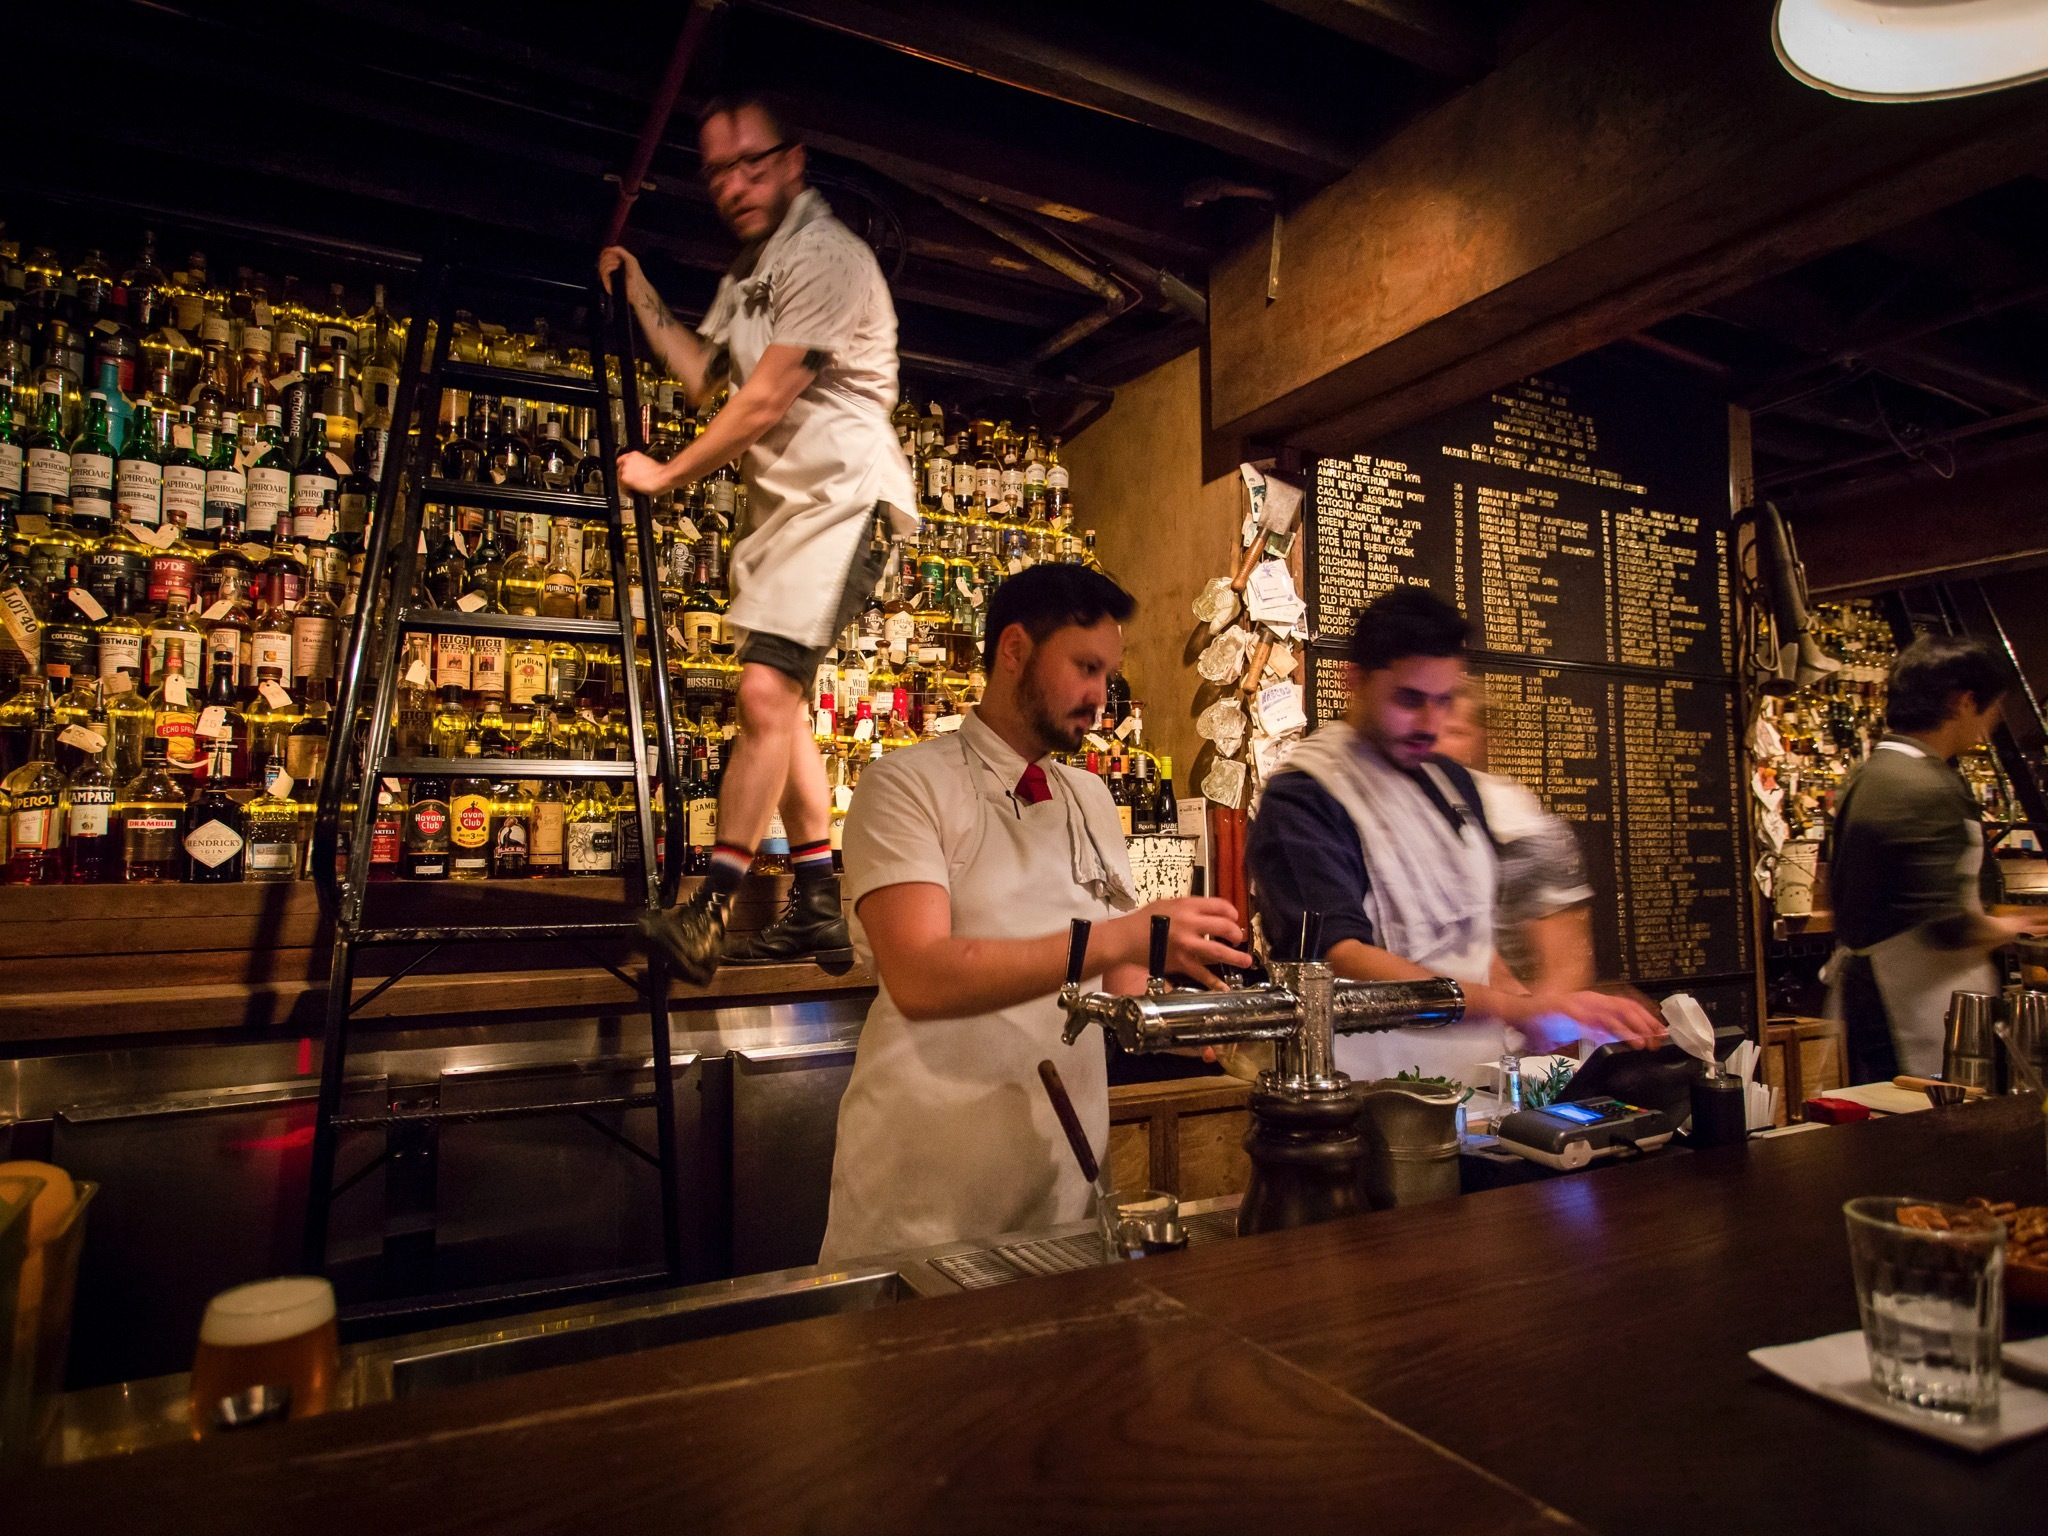 The 50 best bars in Sydney